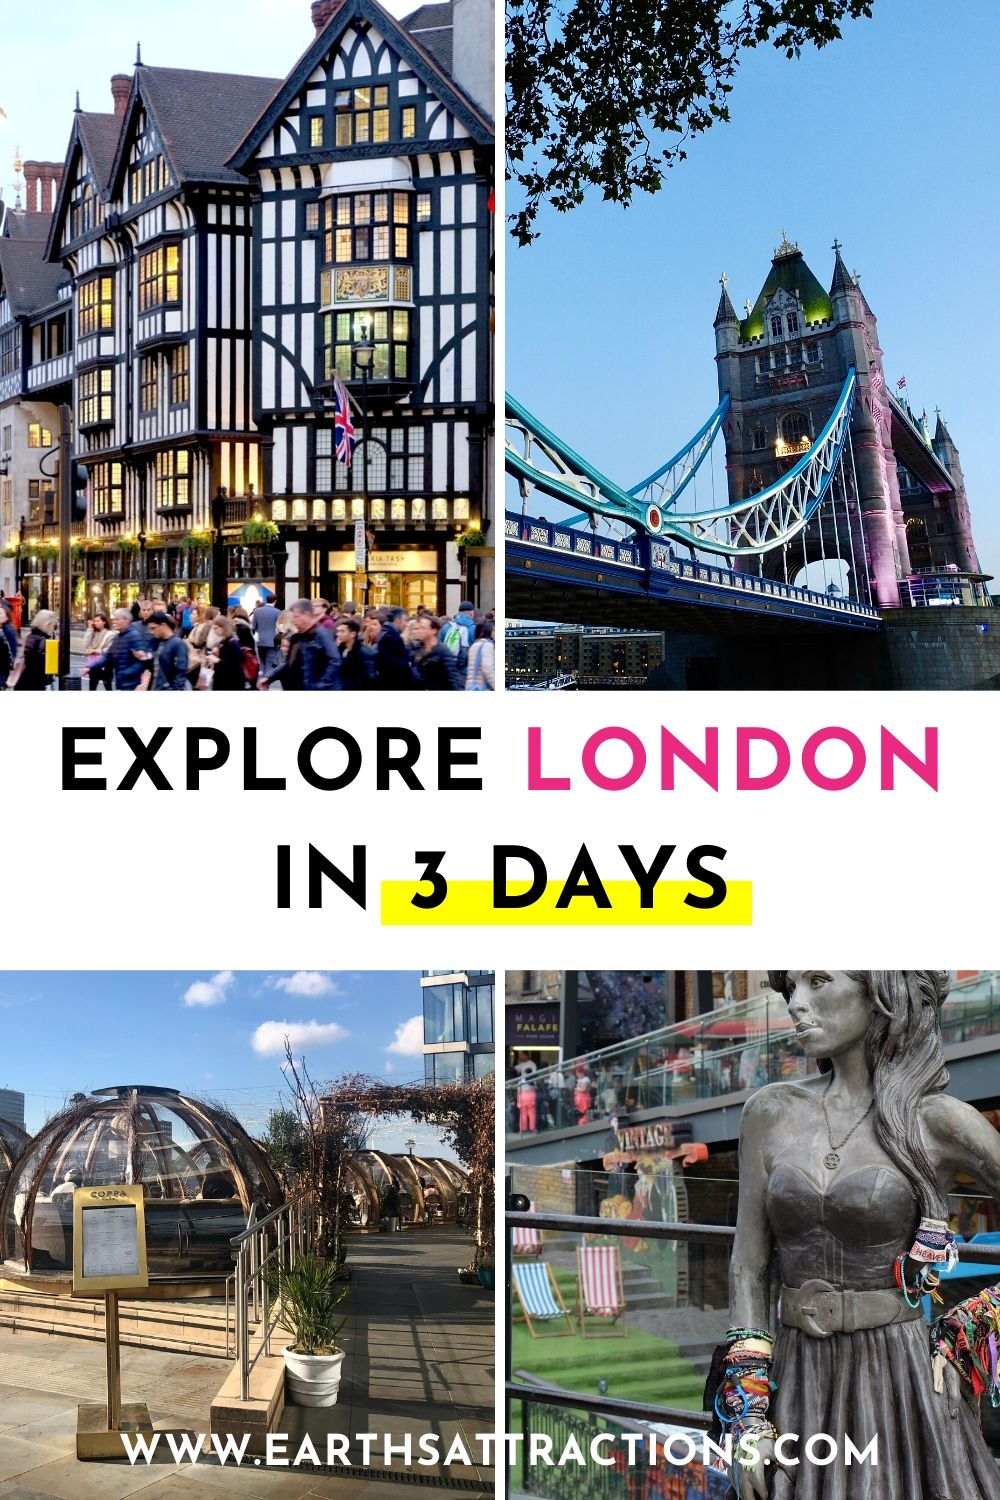 Eplore London in 3 days: what to do in London in 3 days. Use this 3-day walking London itinerary to make the most of your trip to London. Famous London attractions as well as secret London gems are included! #london #uk #greatbritain #europe #londonitinerary #londontrip #earthsattractions #traveleurope #3daylondon